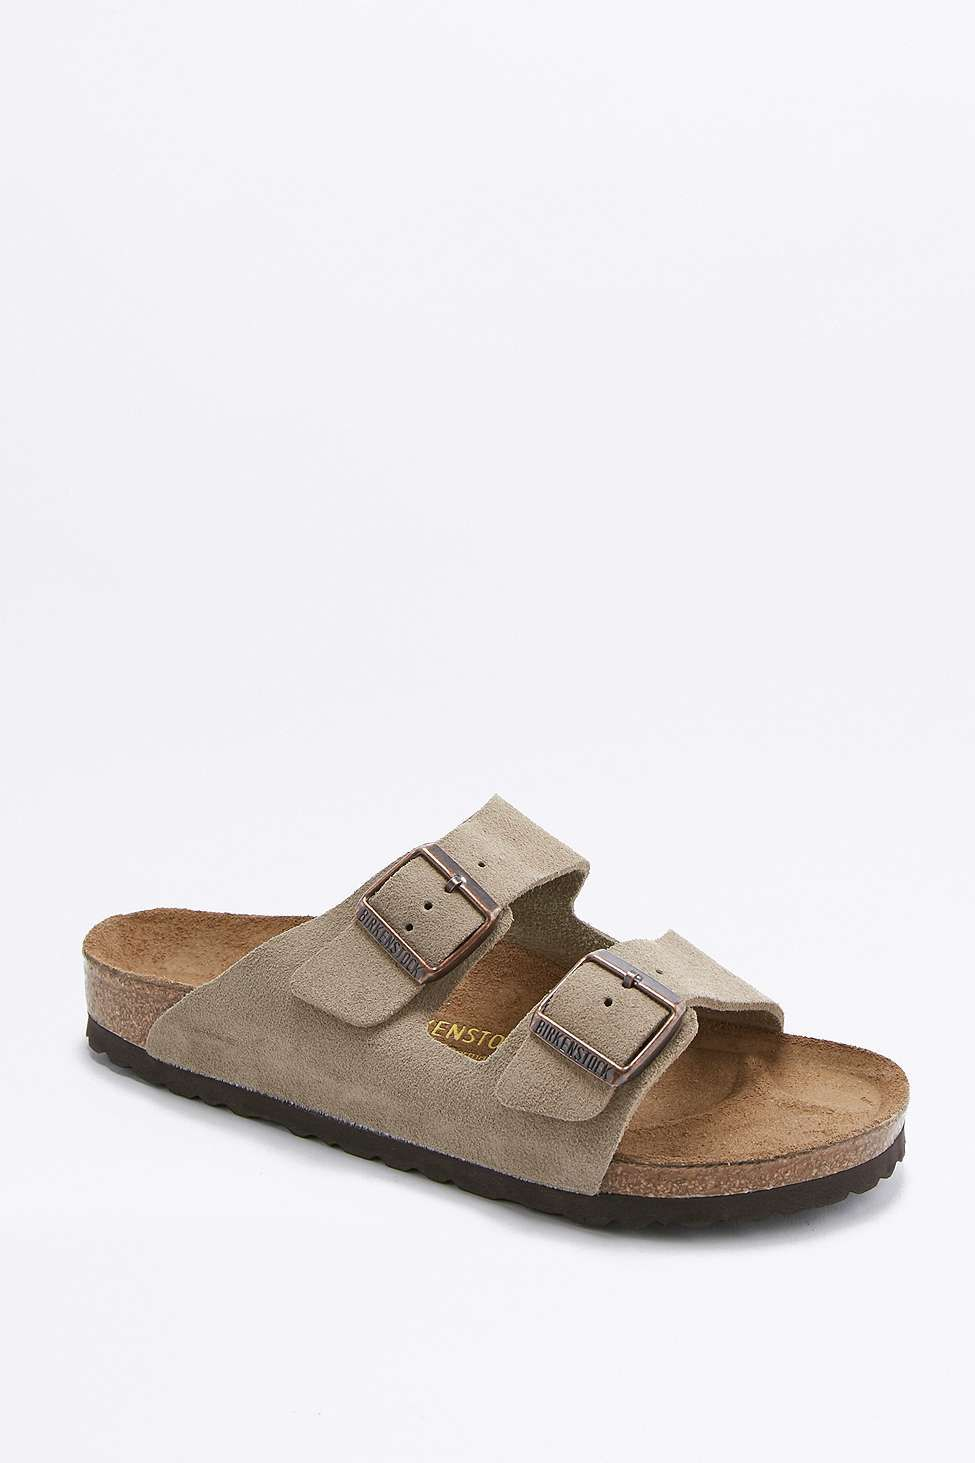 Taupe Schuhe Birkenstock Arizona Taupe Suede Sandals Shoes Boots Schuhe